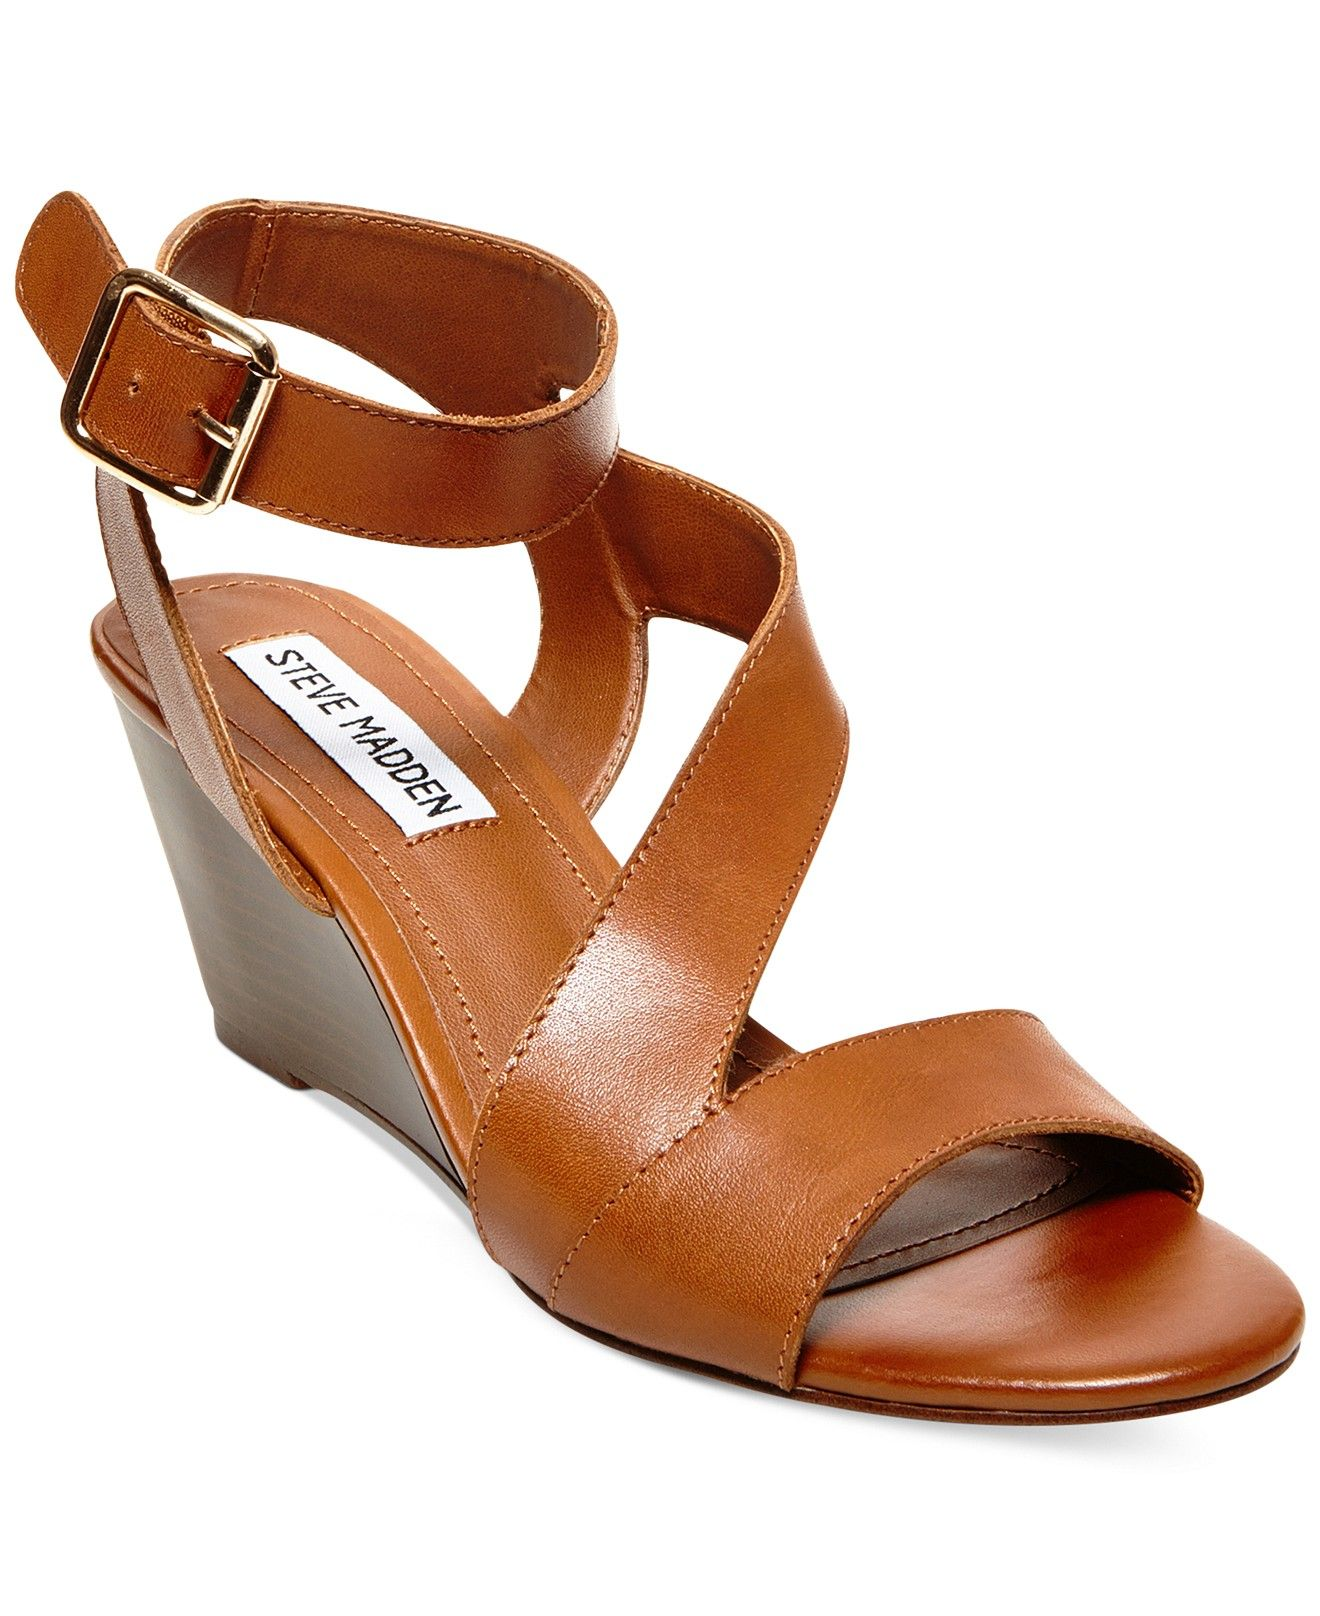 bec42891fa33 Code  GREAT Steve Madden Women s Stipend Wedge Sandals - Sandals - Shoes -  Macy s